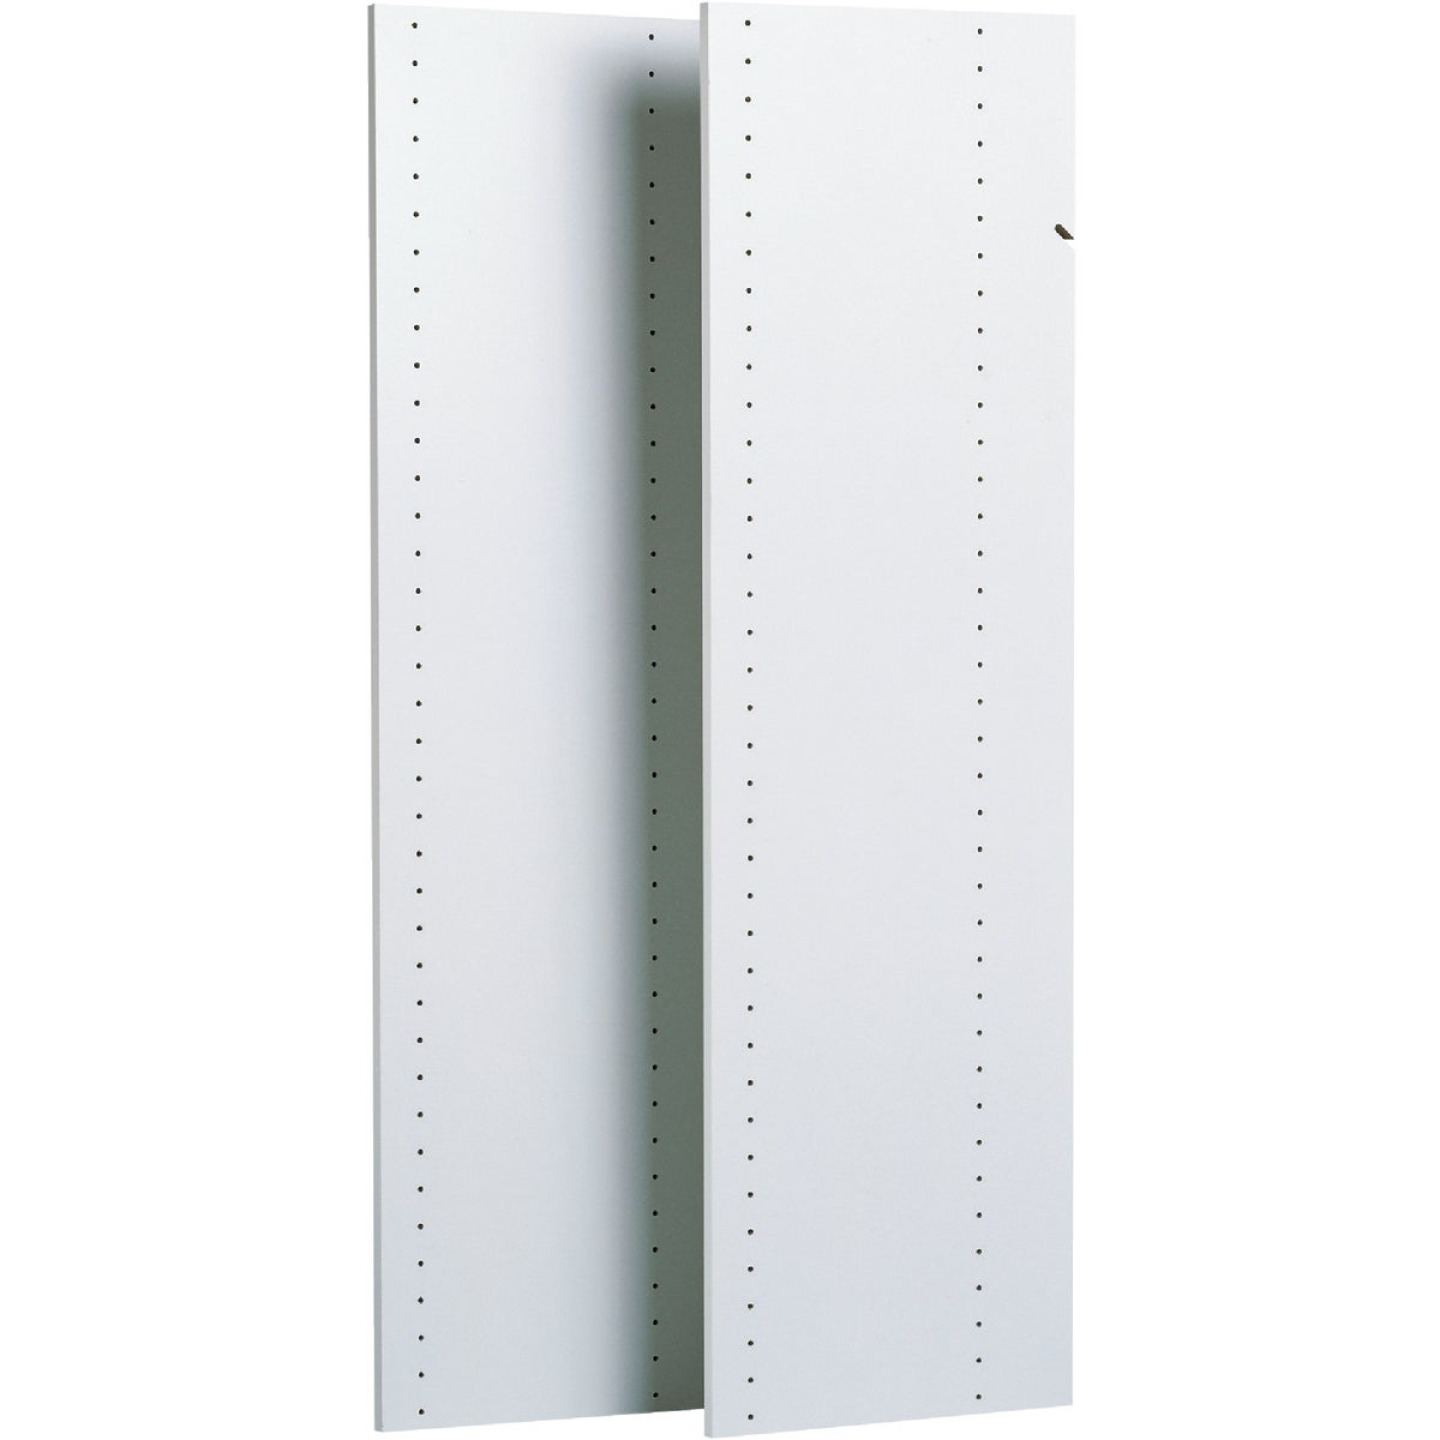 Easy Track 72 In. Closet Vertical Panel (2-Count) Image 1